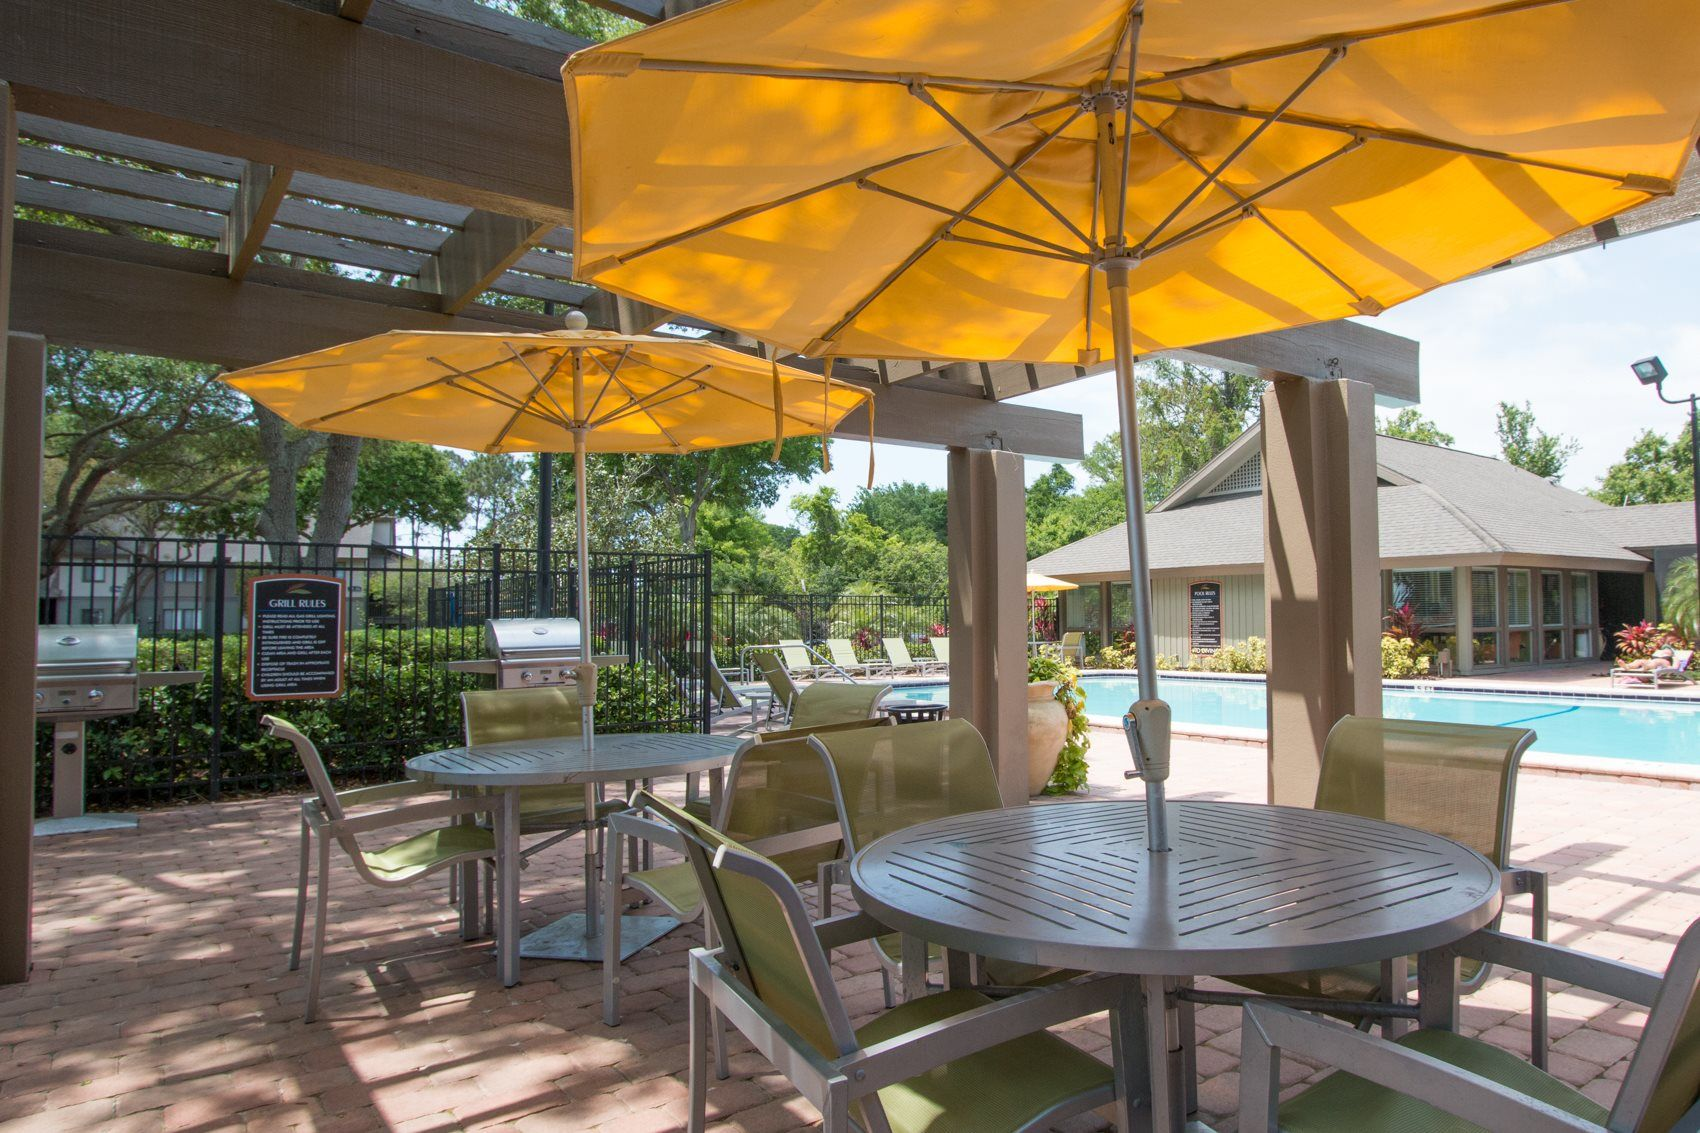 Poolside grilling area with stainless steel grills and tables and chairs